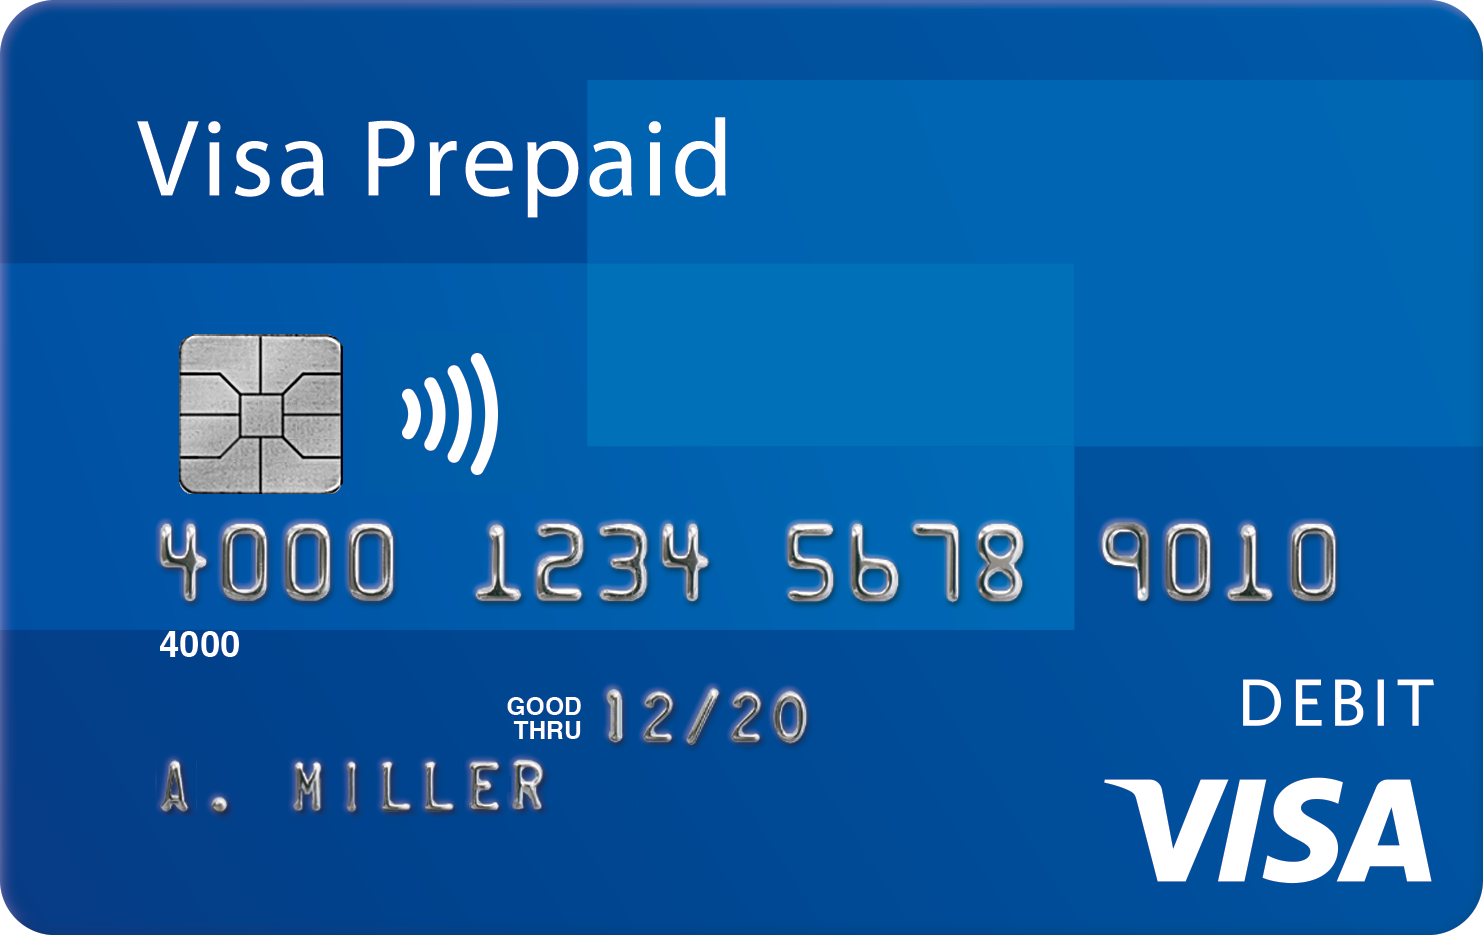 an image of Visa Business Prepaid card